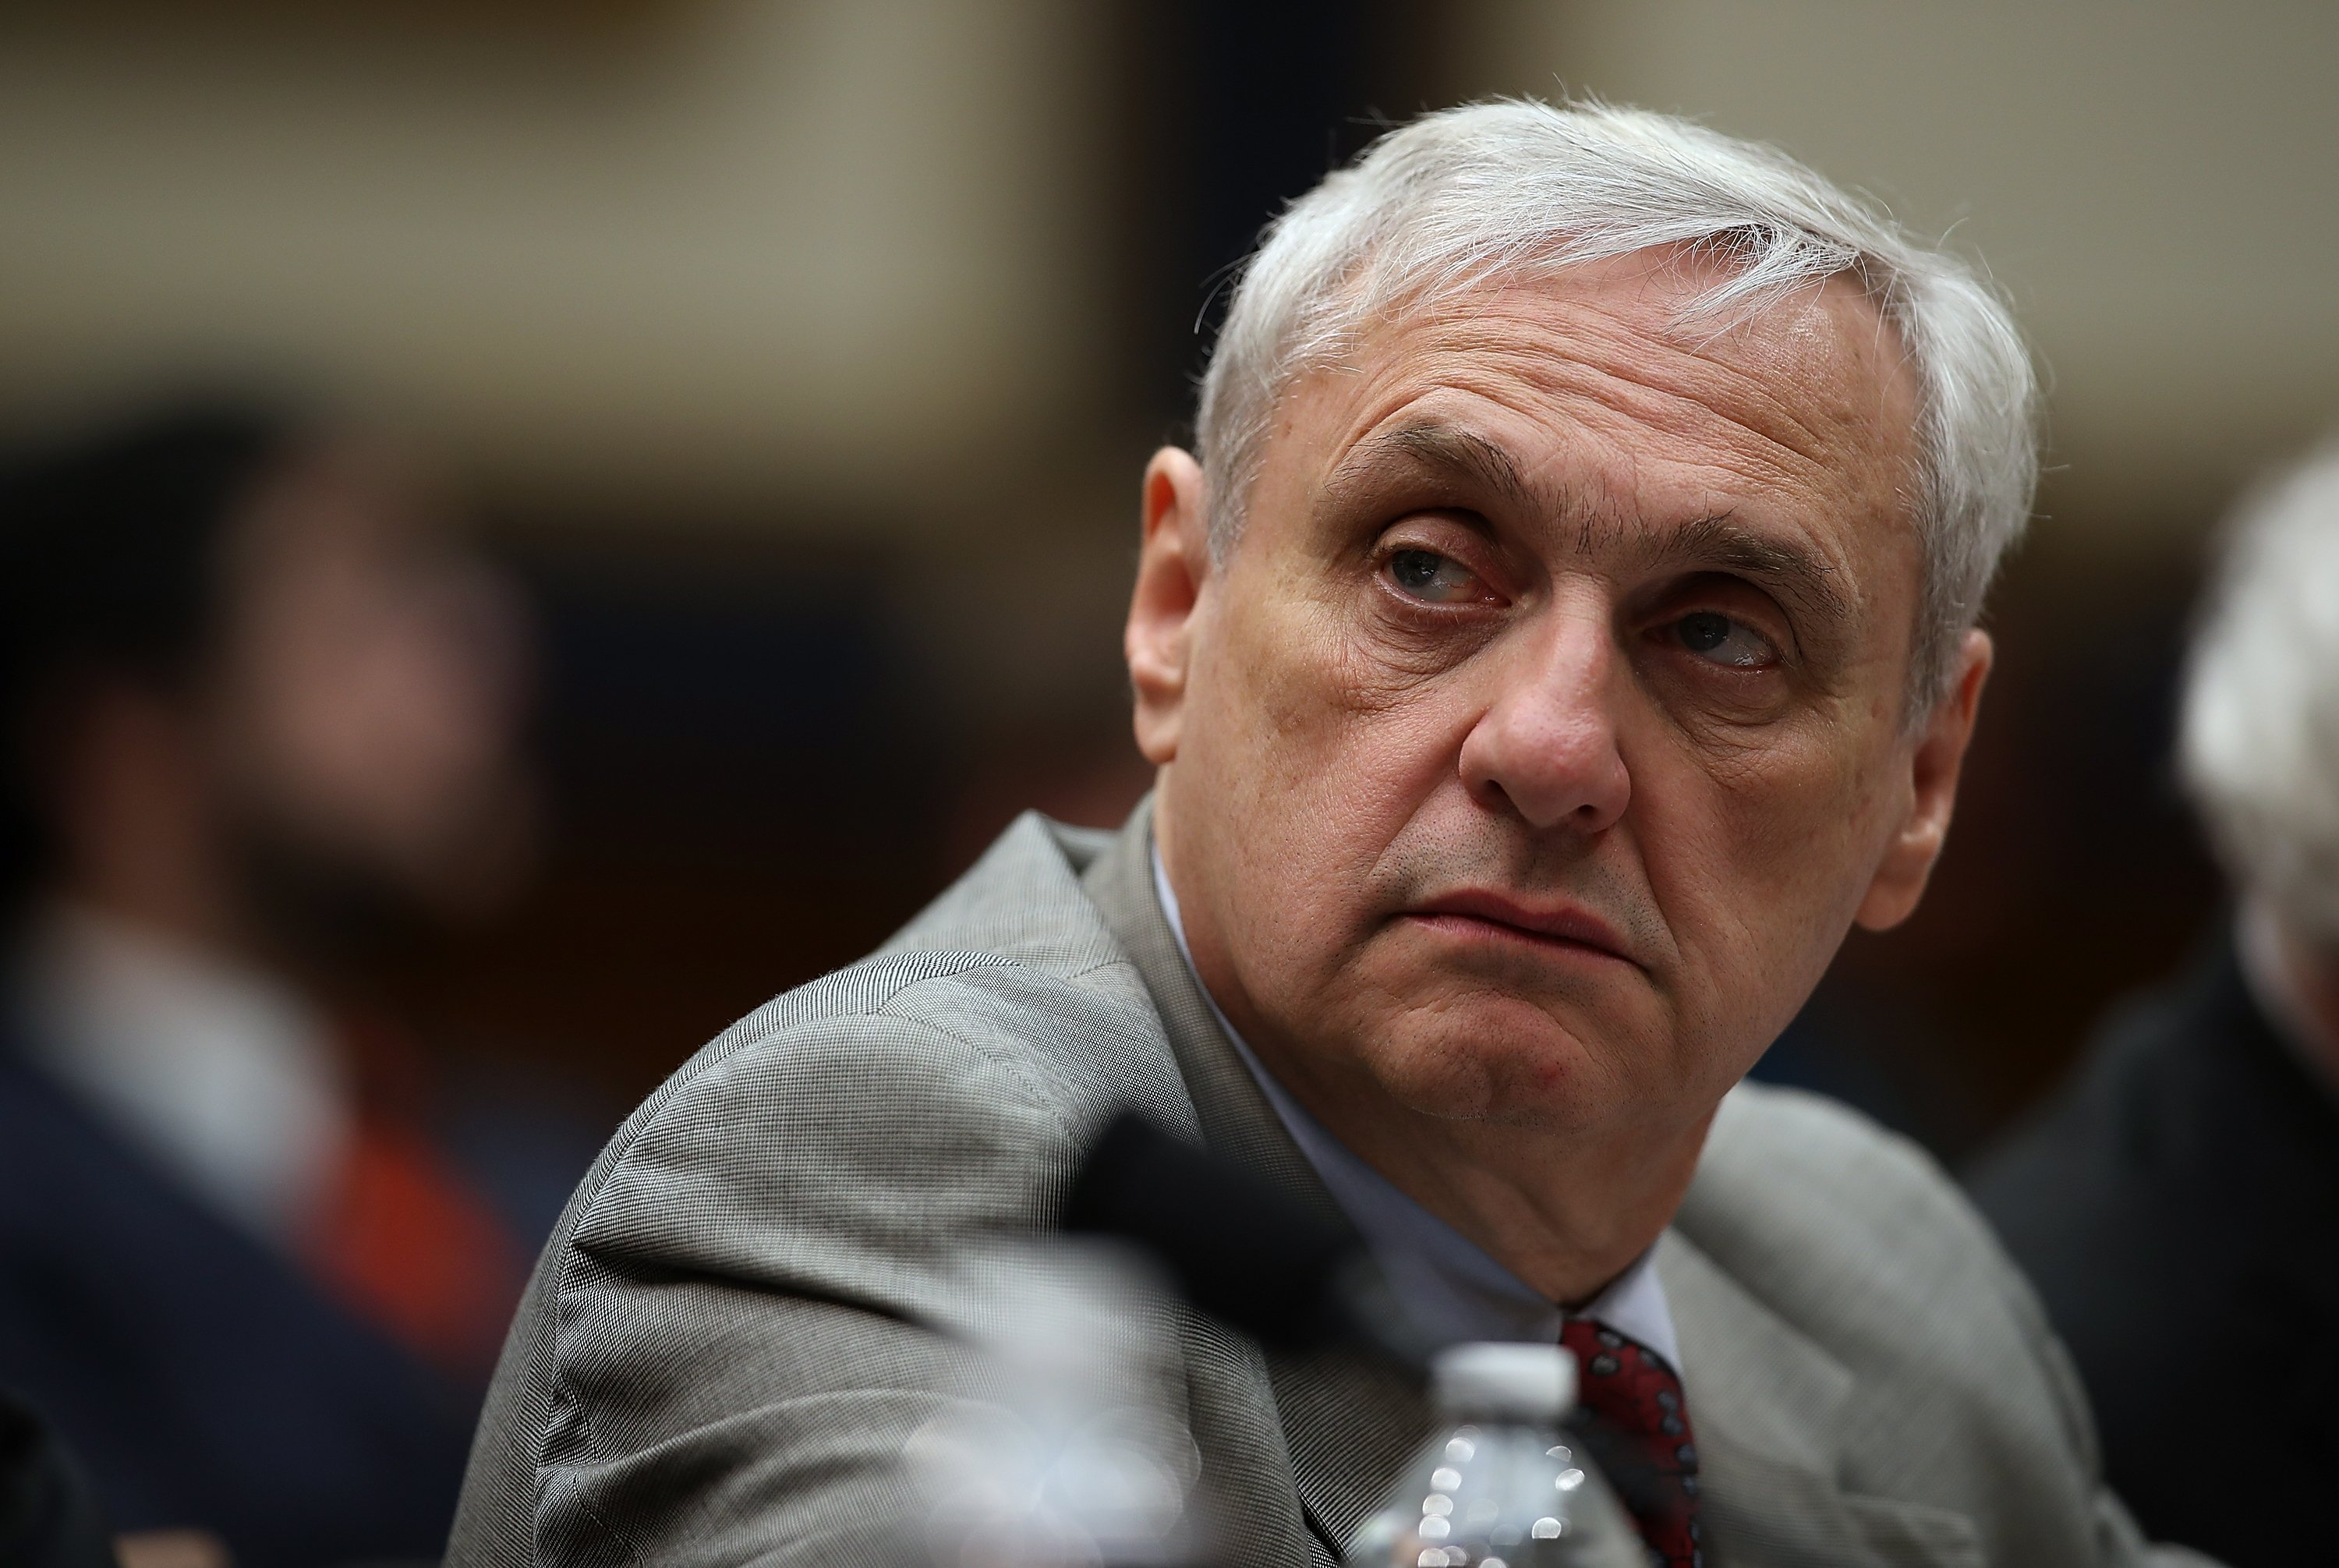 Officials began examining problems after former law clerks and other staffers went public with sexual harassment claims against US Appeals Court Judge Alex Kozinski, a nationally prominent jurist who had served for more than 30 years in California.